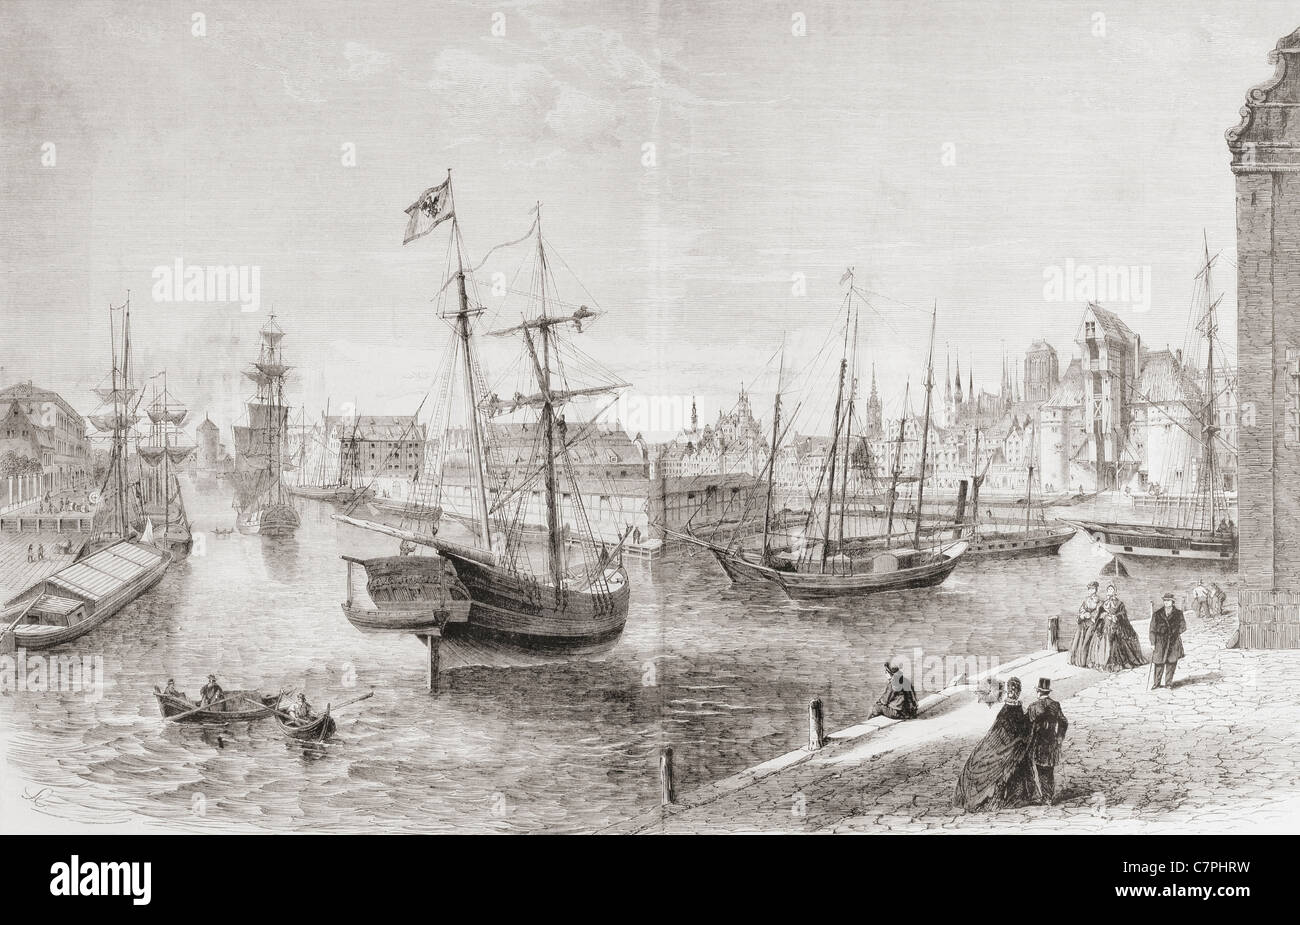 The port of Gdansk, Poland in the mid 19th century. - Stock Image